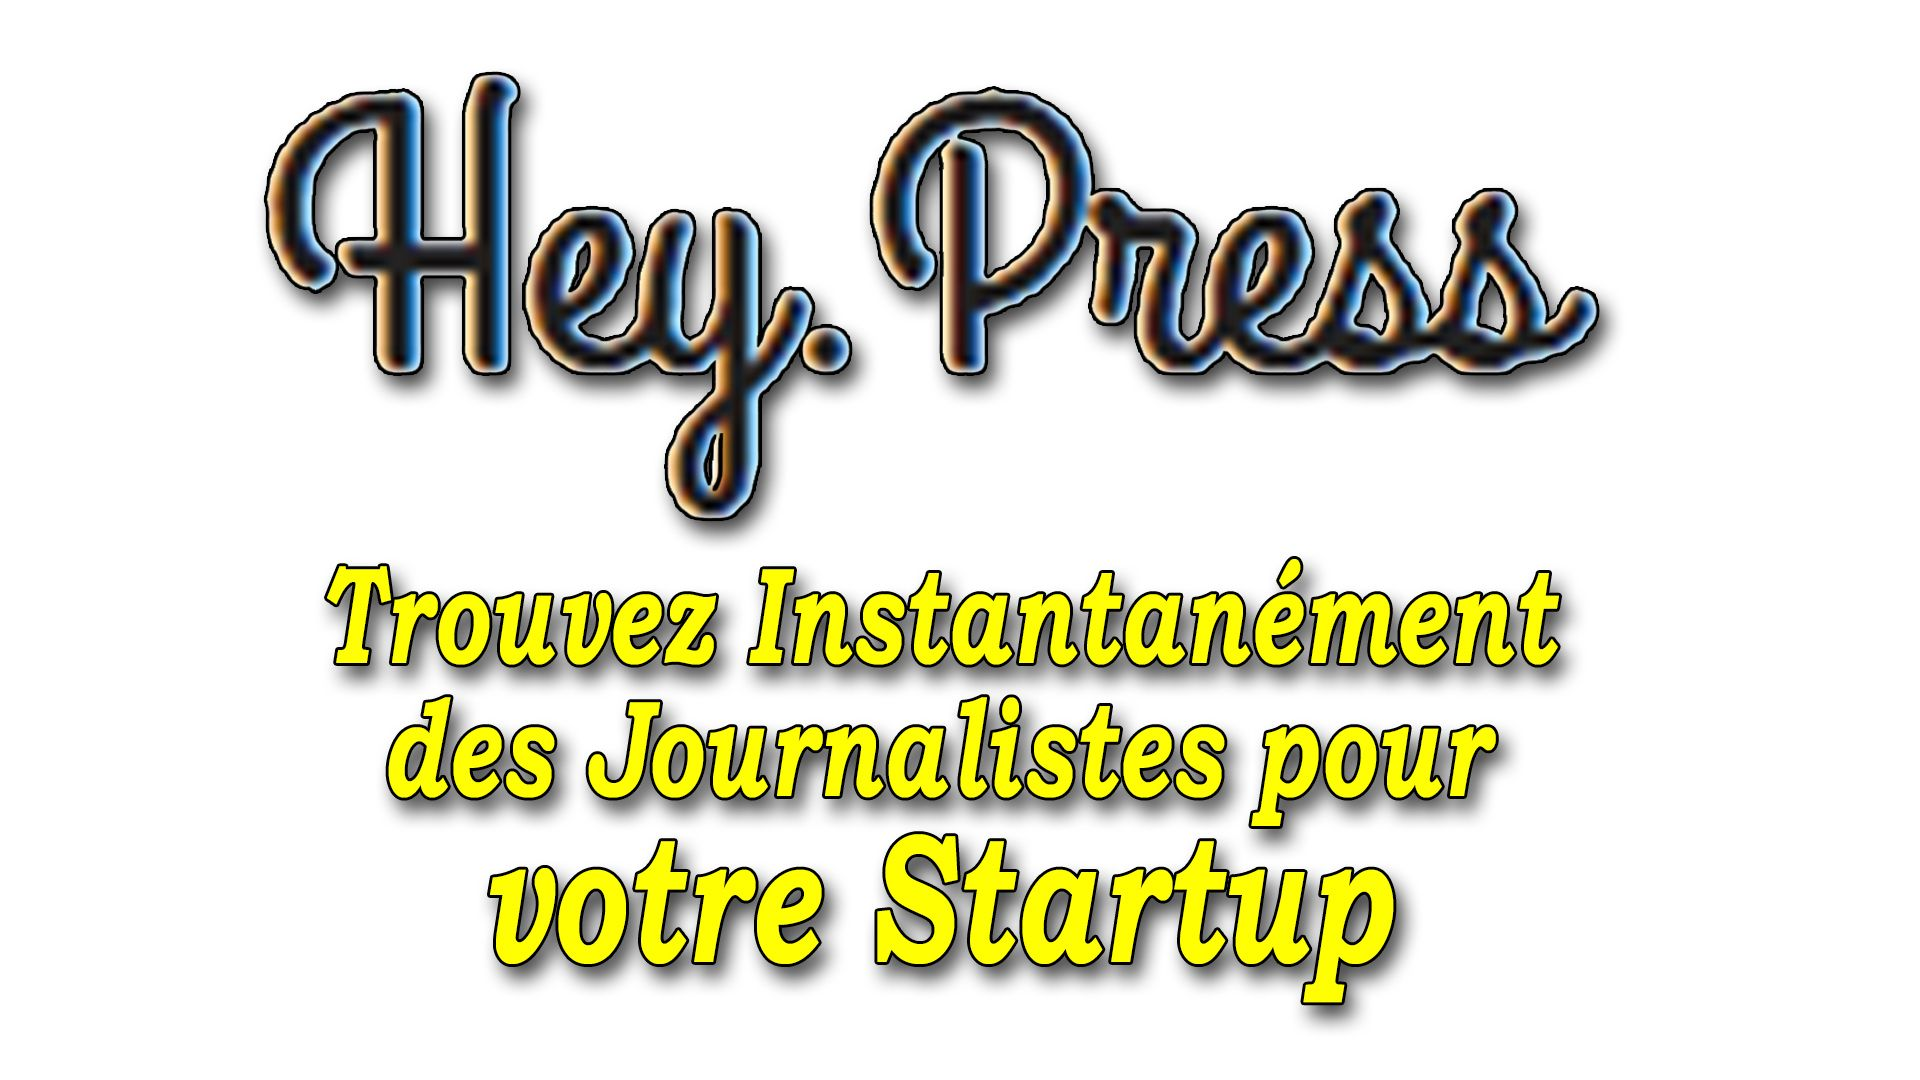 Trouver instantanément des journalistes pour sa startup #GrowthHacking #WebMarketing #FormationGrowthHacking #CentreDeFormationFrance #TunnelAARRR #AARRR #SocialMedia #CommunityManagement #SEO #HeyPress